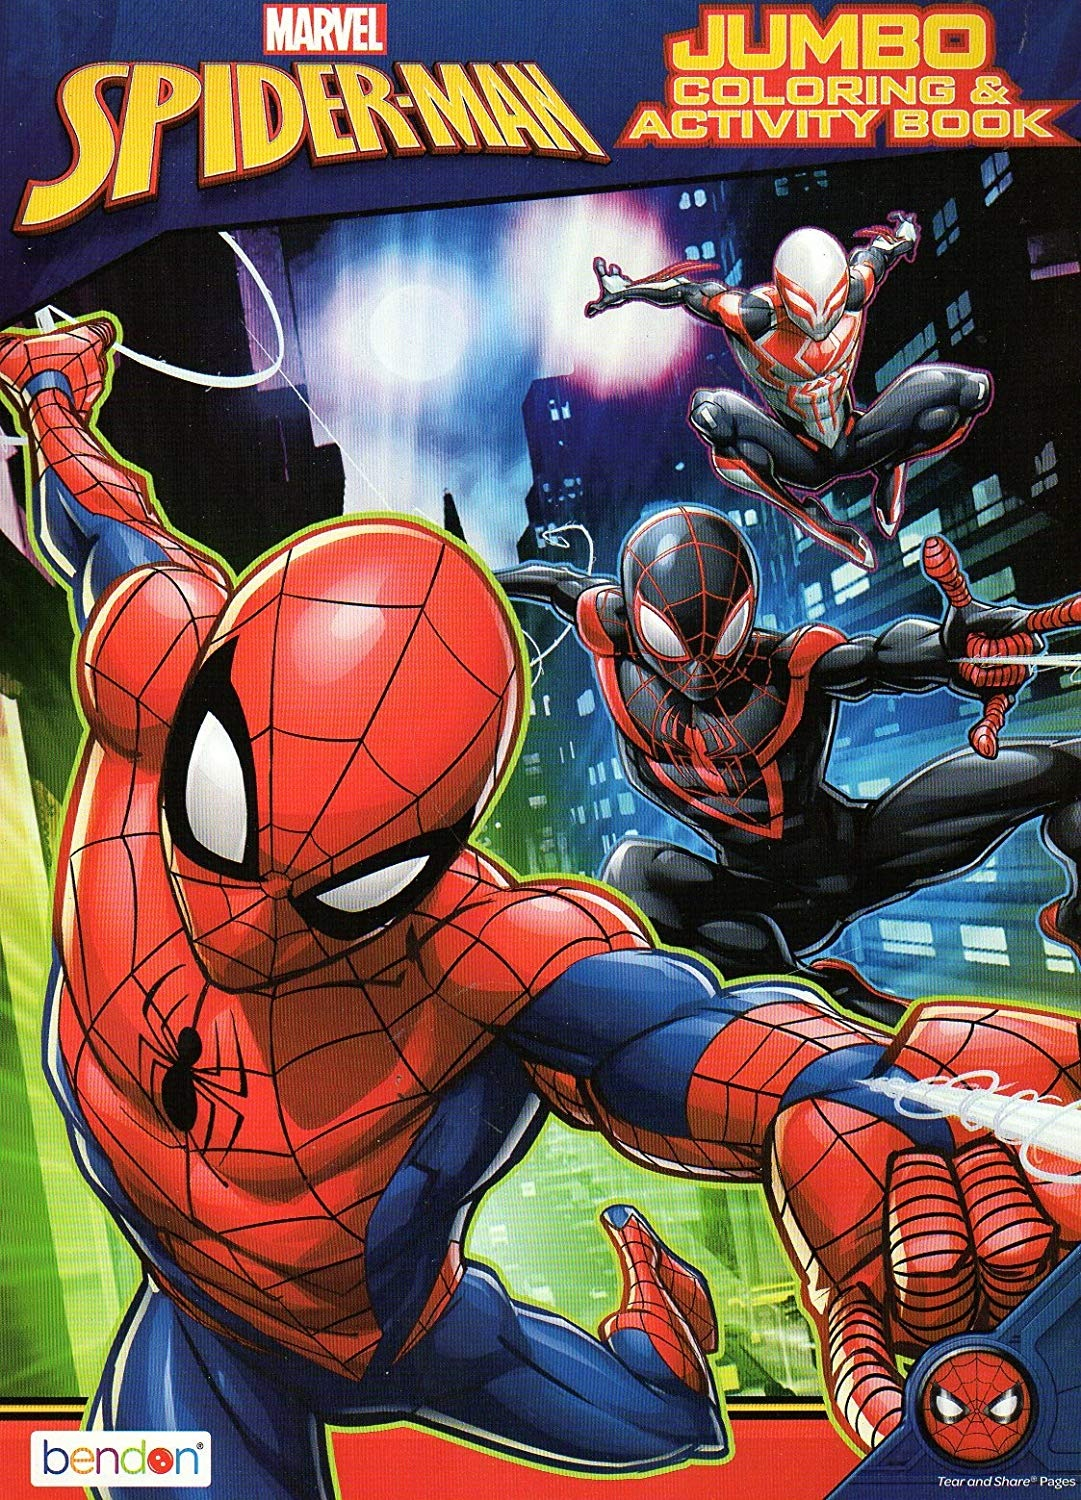 Marvel Spider-Man Jumbo Colouring and Activity Book - v6